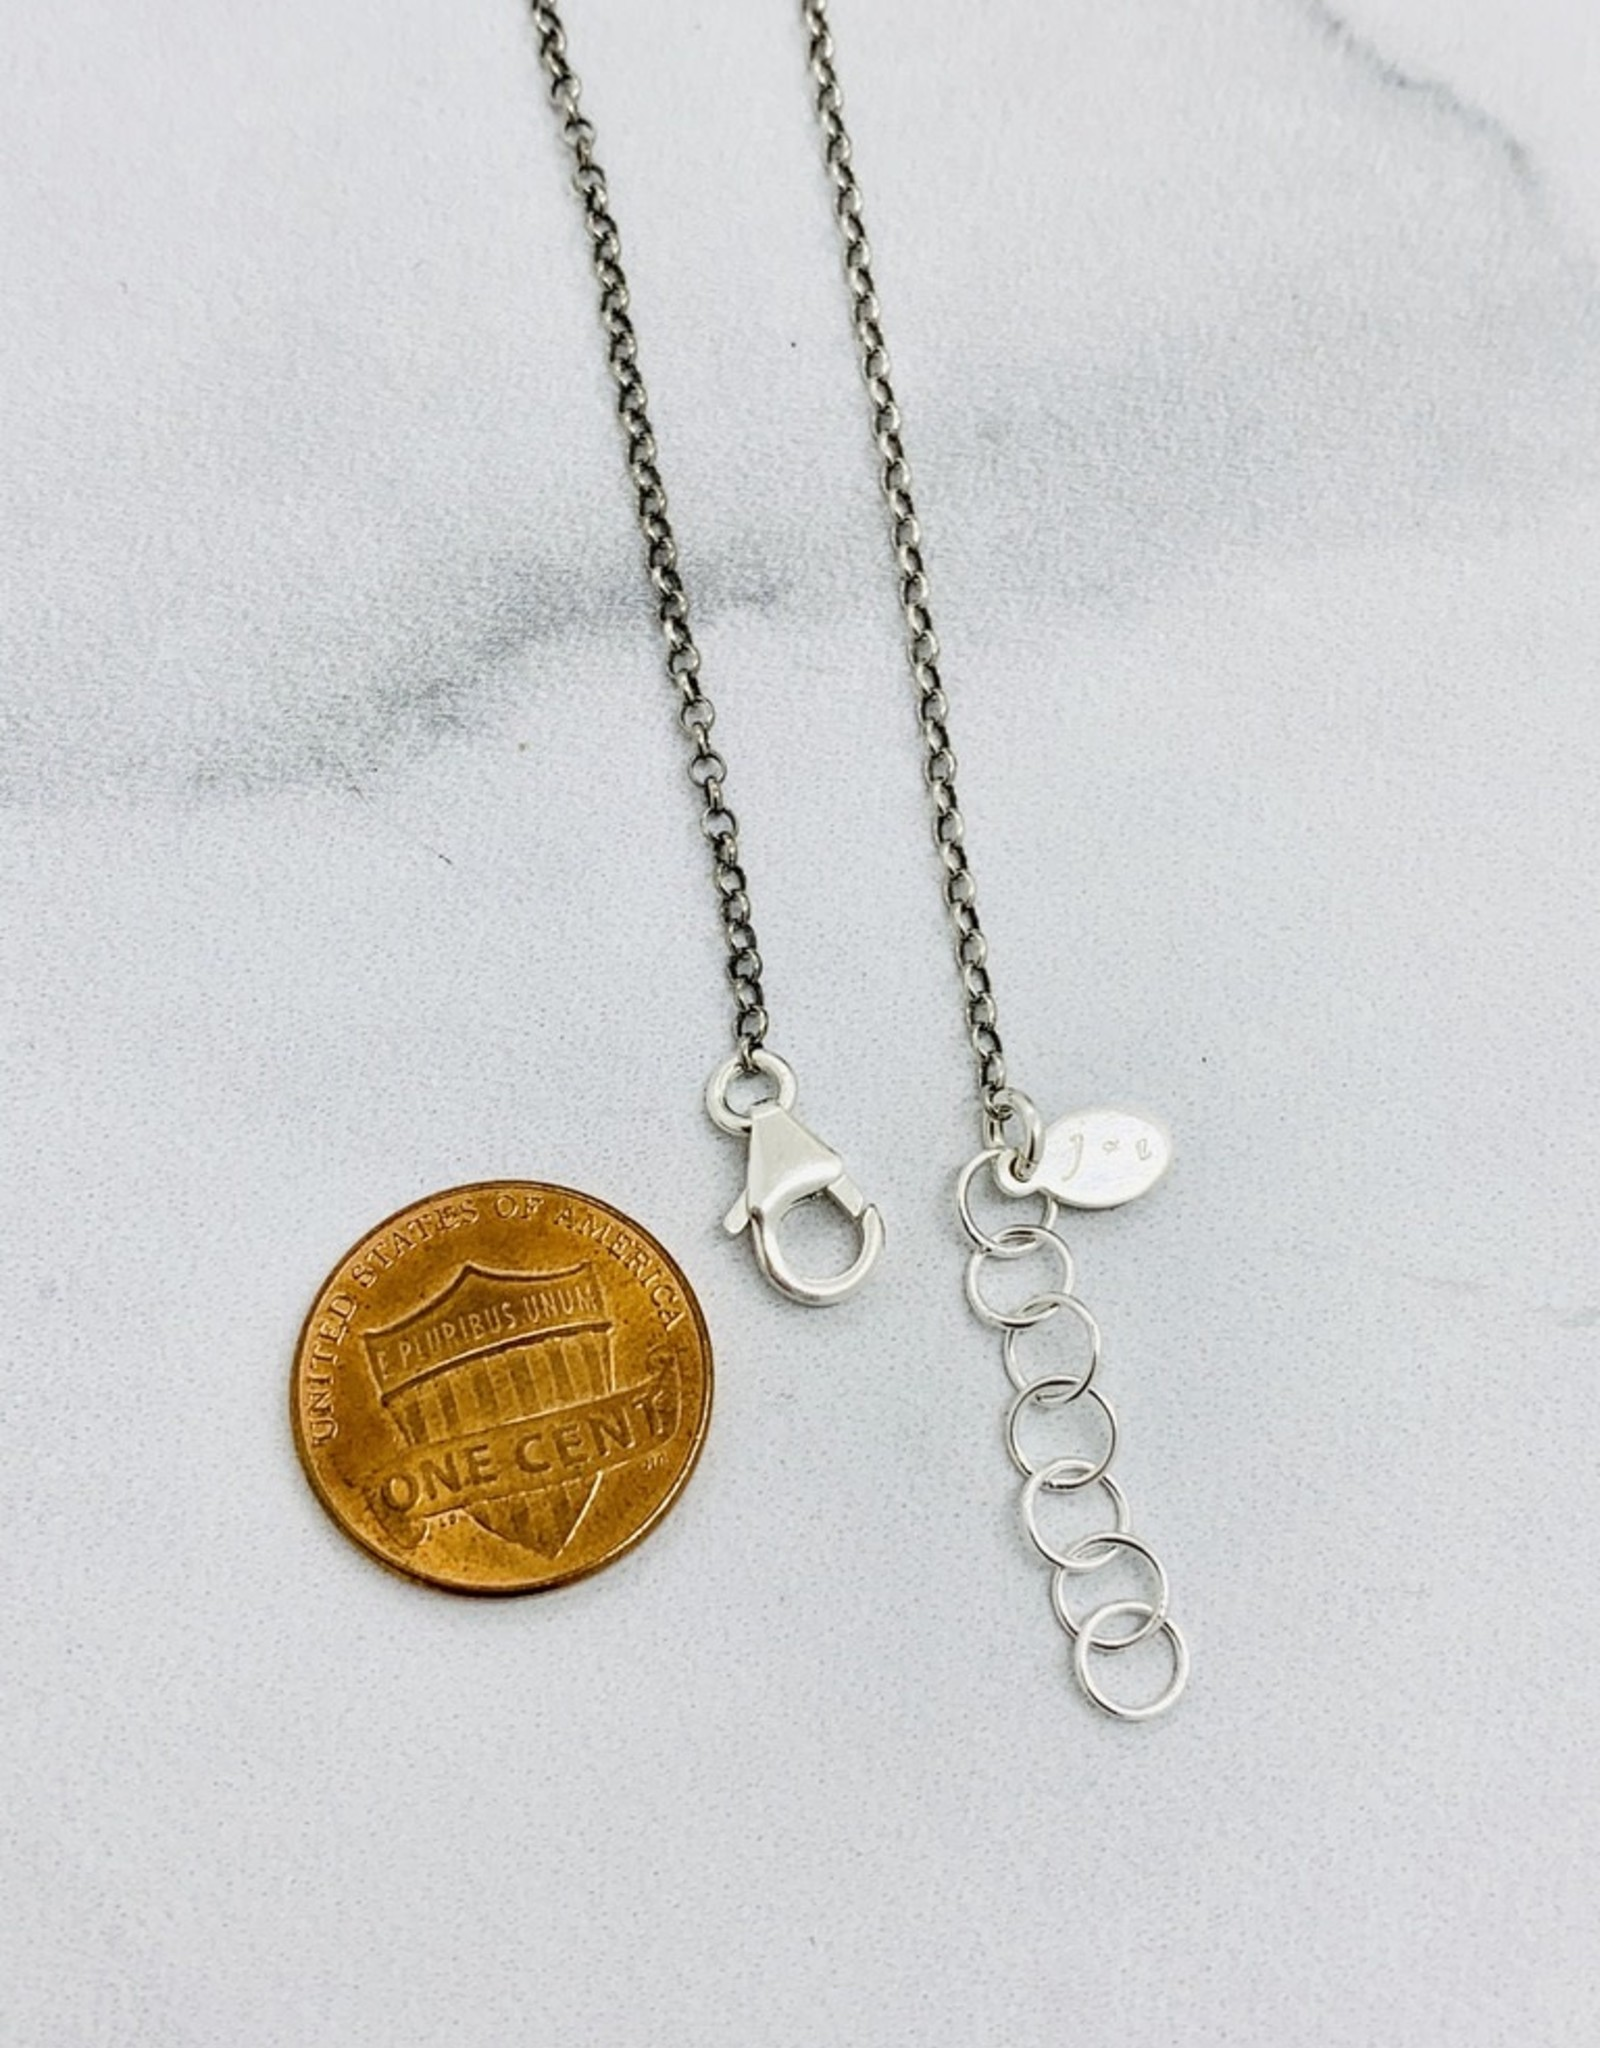 J&I Handmade 8mm Faceted Labradorite Coin in 14kt Gold filled Link on Sterling Chain Necklace